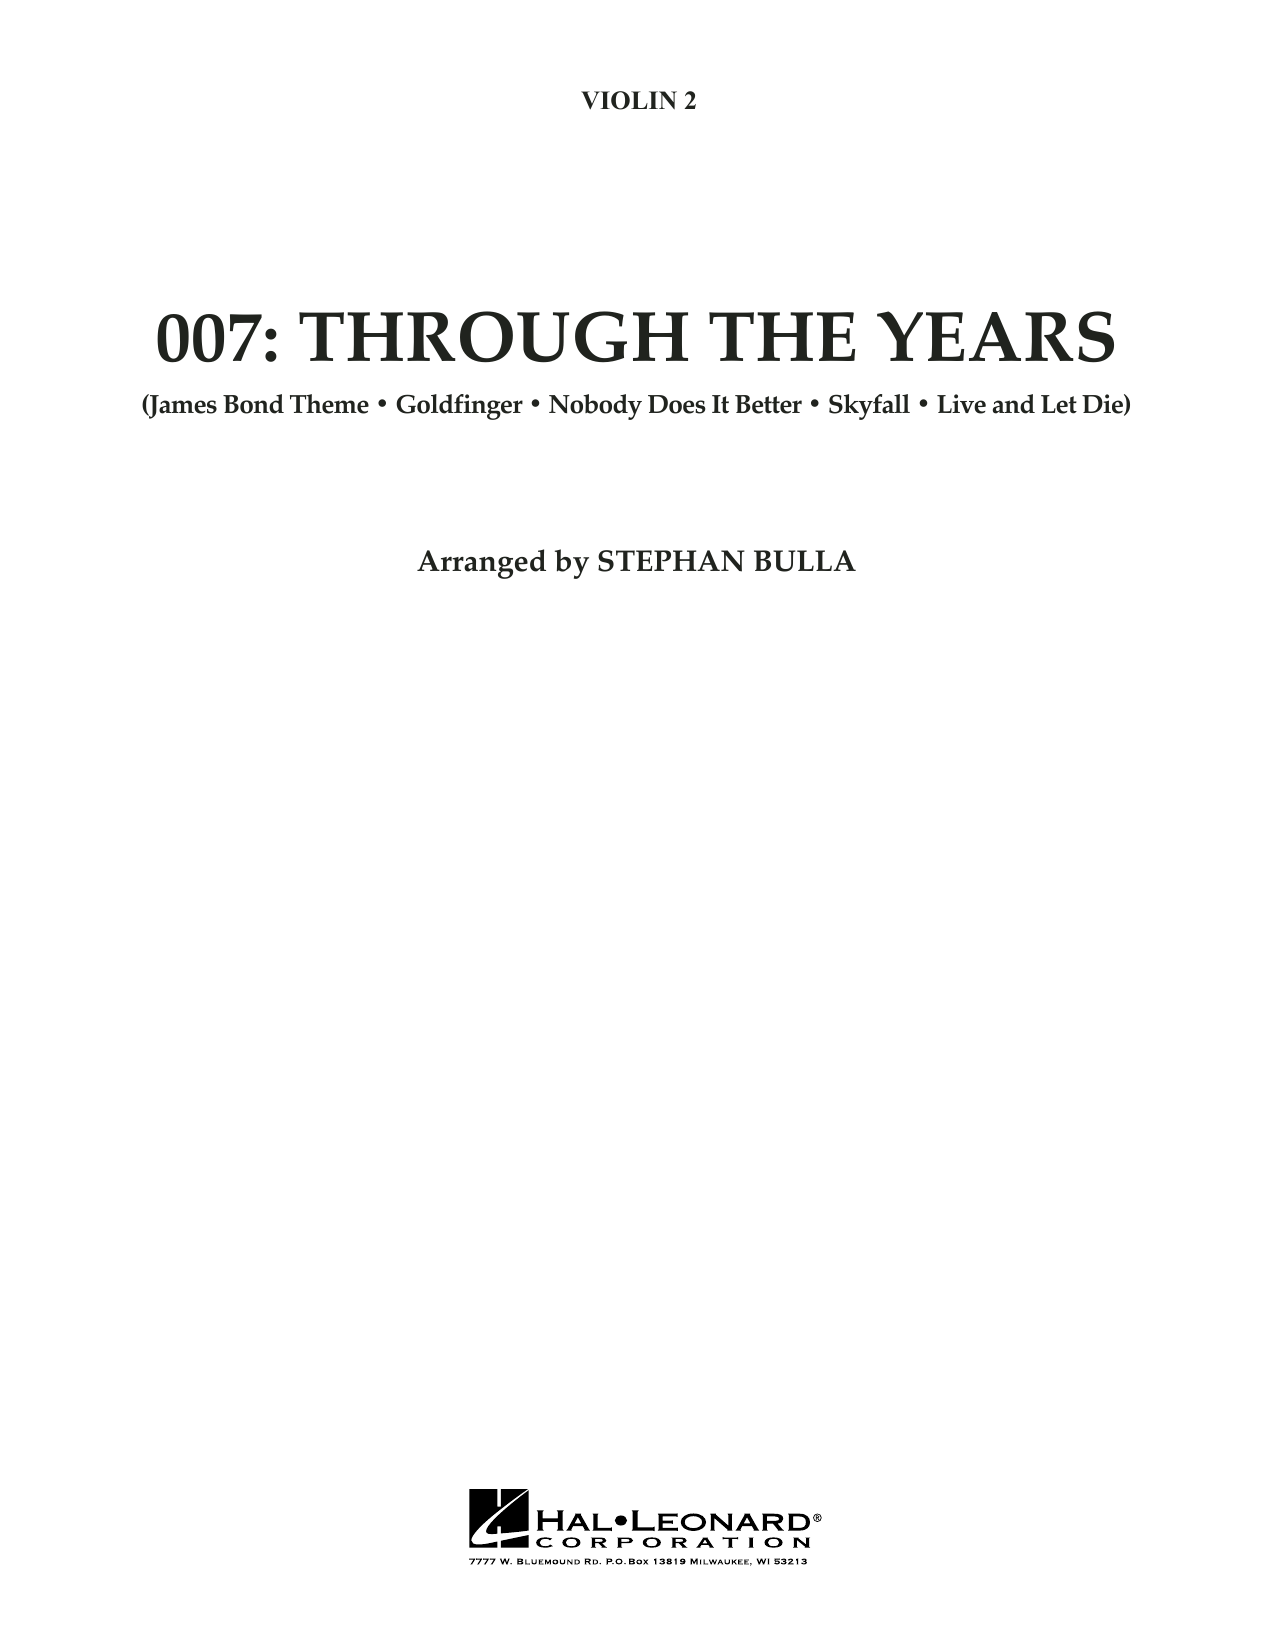 Stephen Bulla 007: Through The Years - Violin 2 sheet music preview music notes and score for Orchestra including 4 page(s)